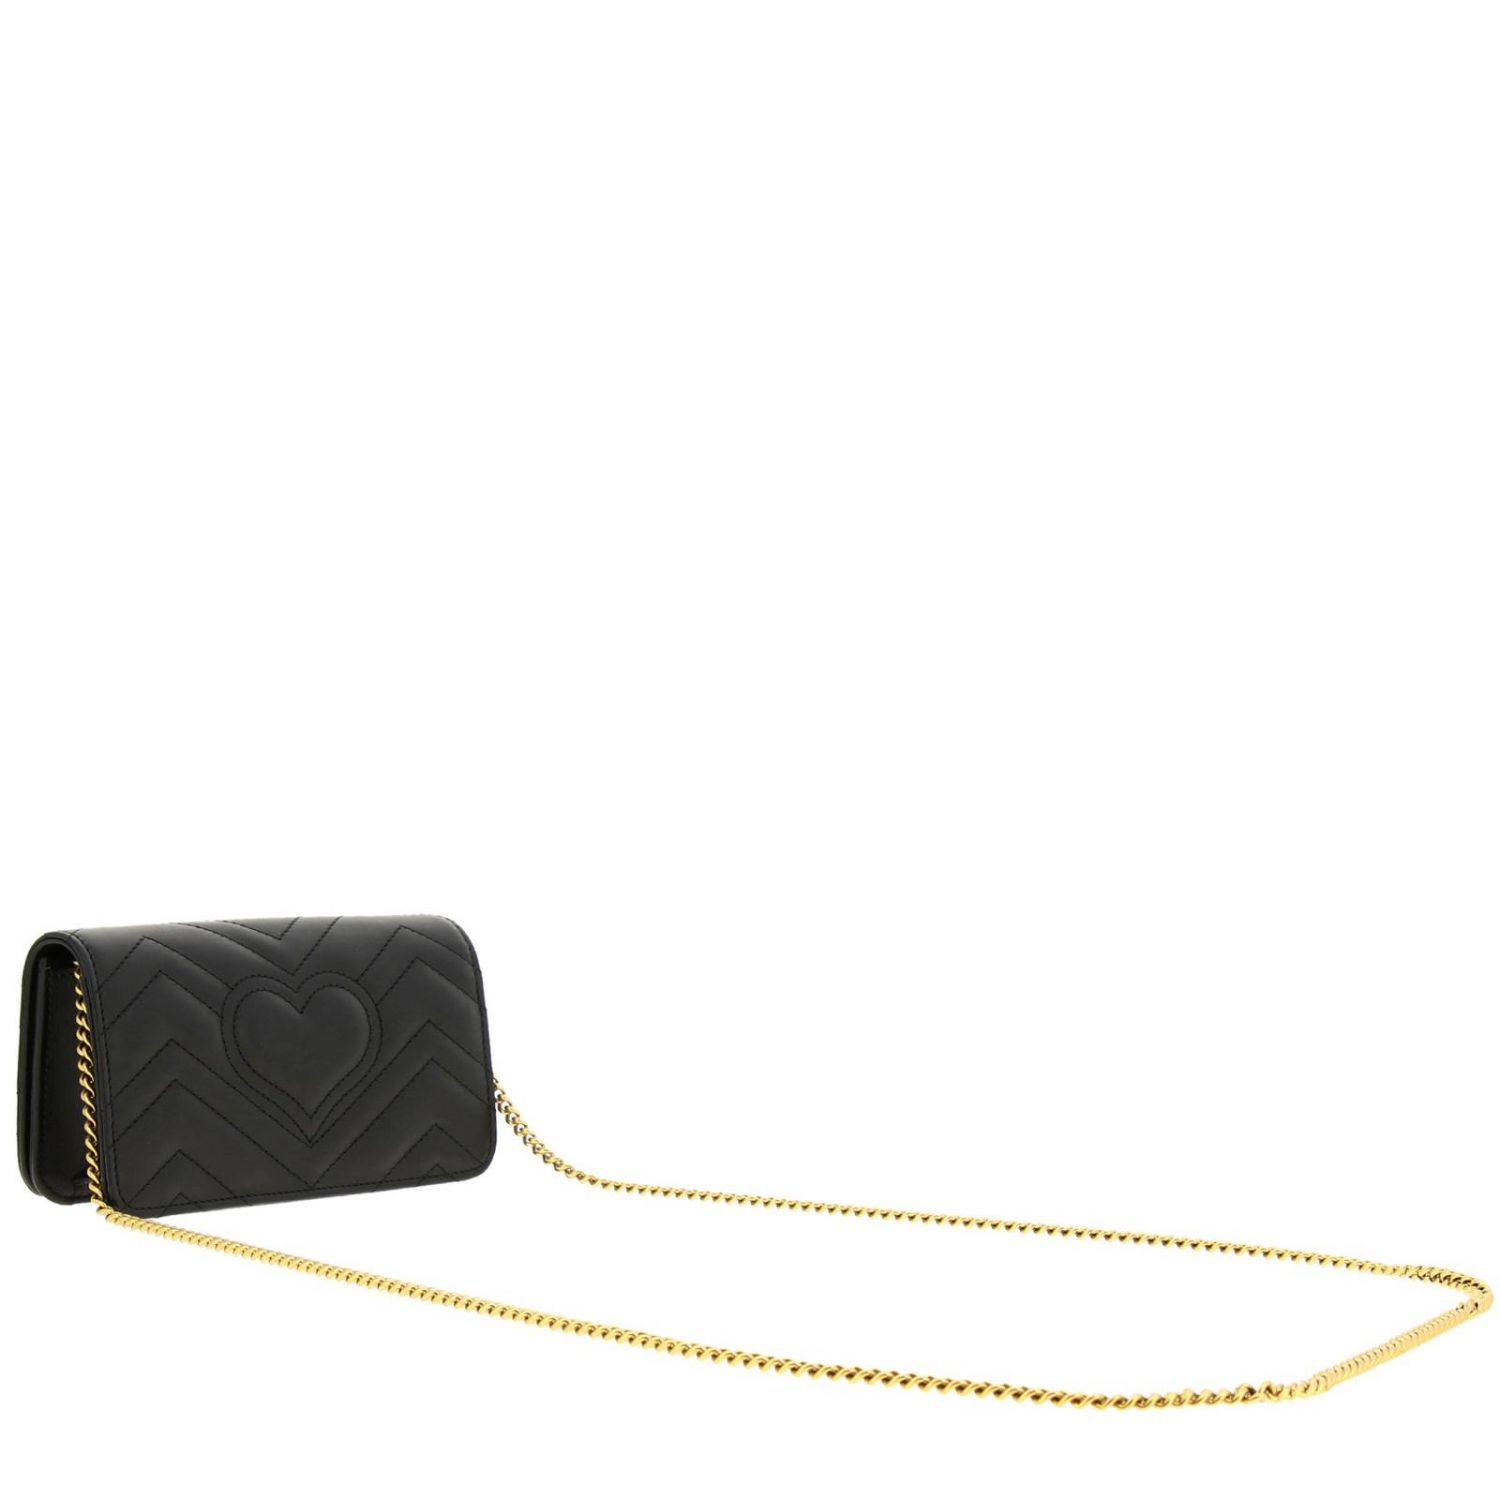 Mini bag Gucci: GG Marmont Gucci genuine quilted leather handbag with chevron pattern black 3